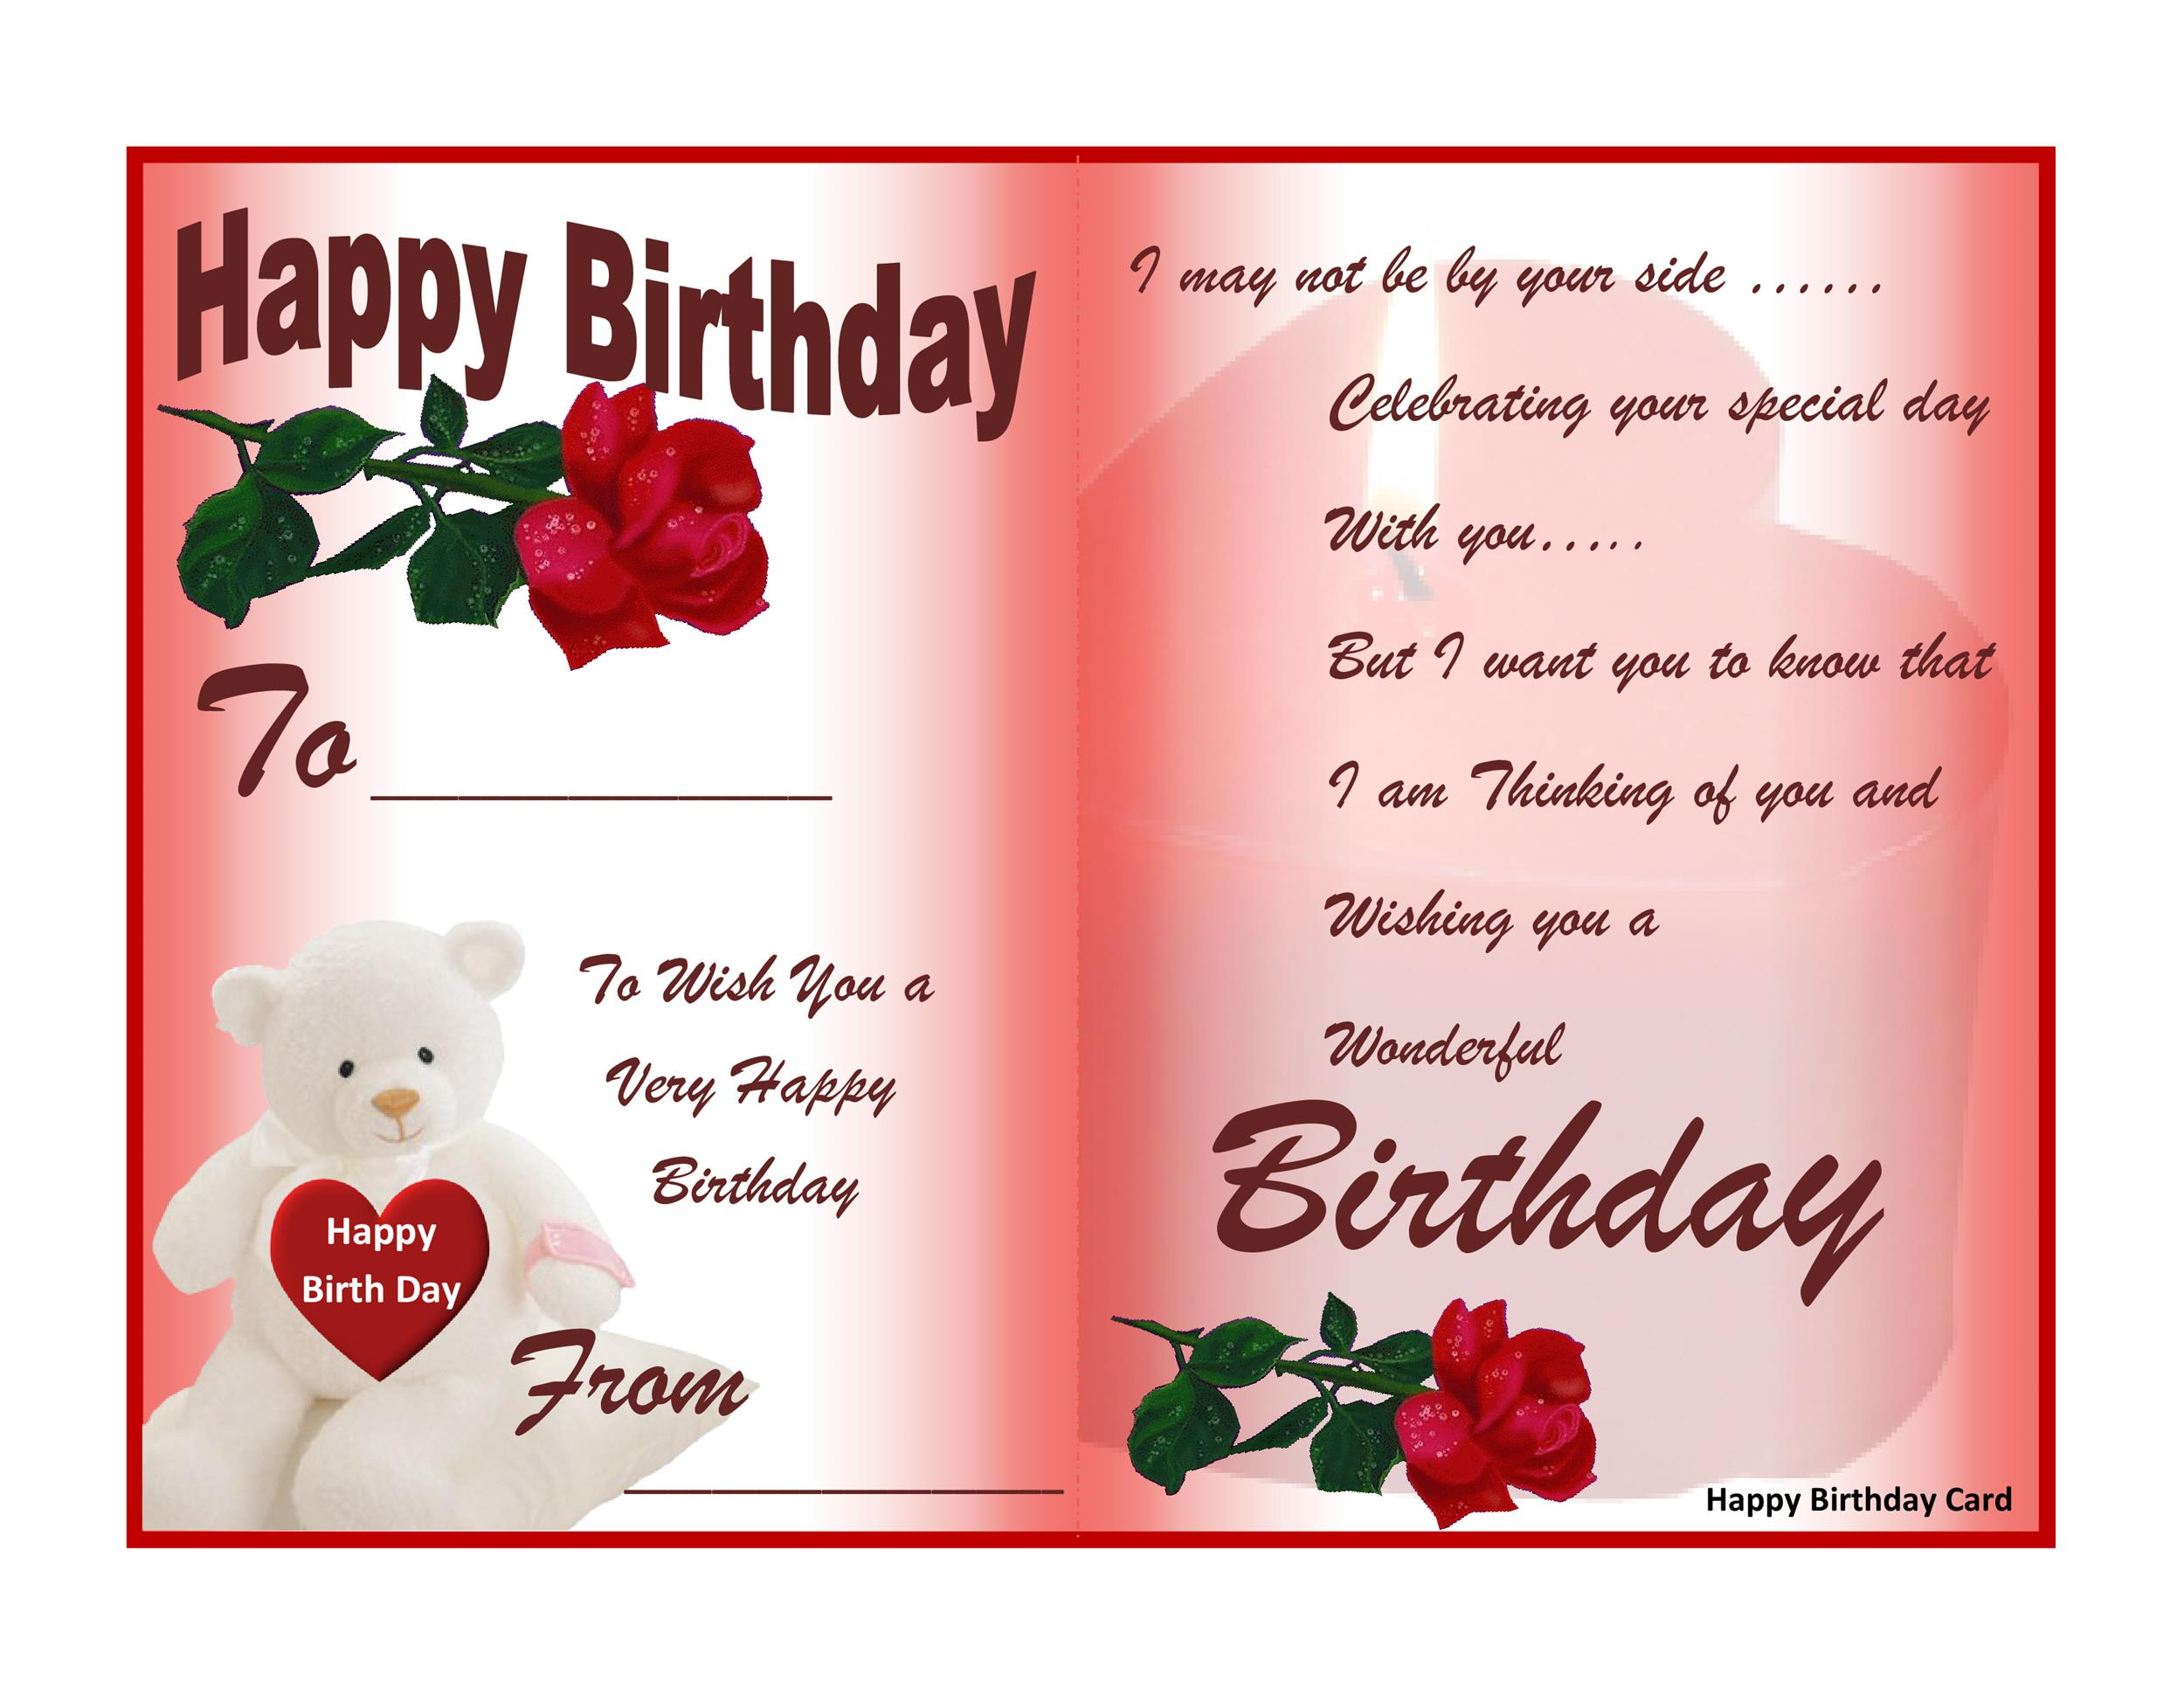 40+ FREE Birthday Card Templates ᐅ Template Lab